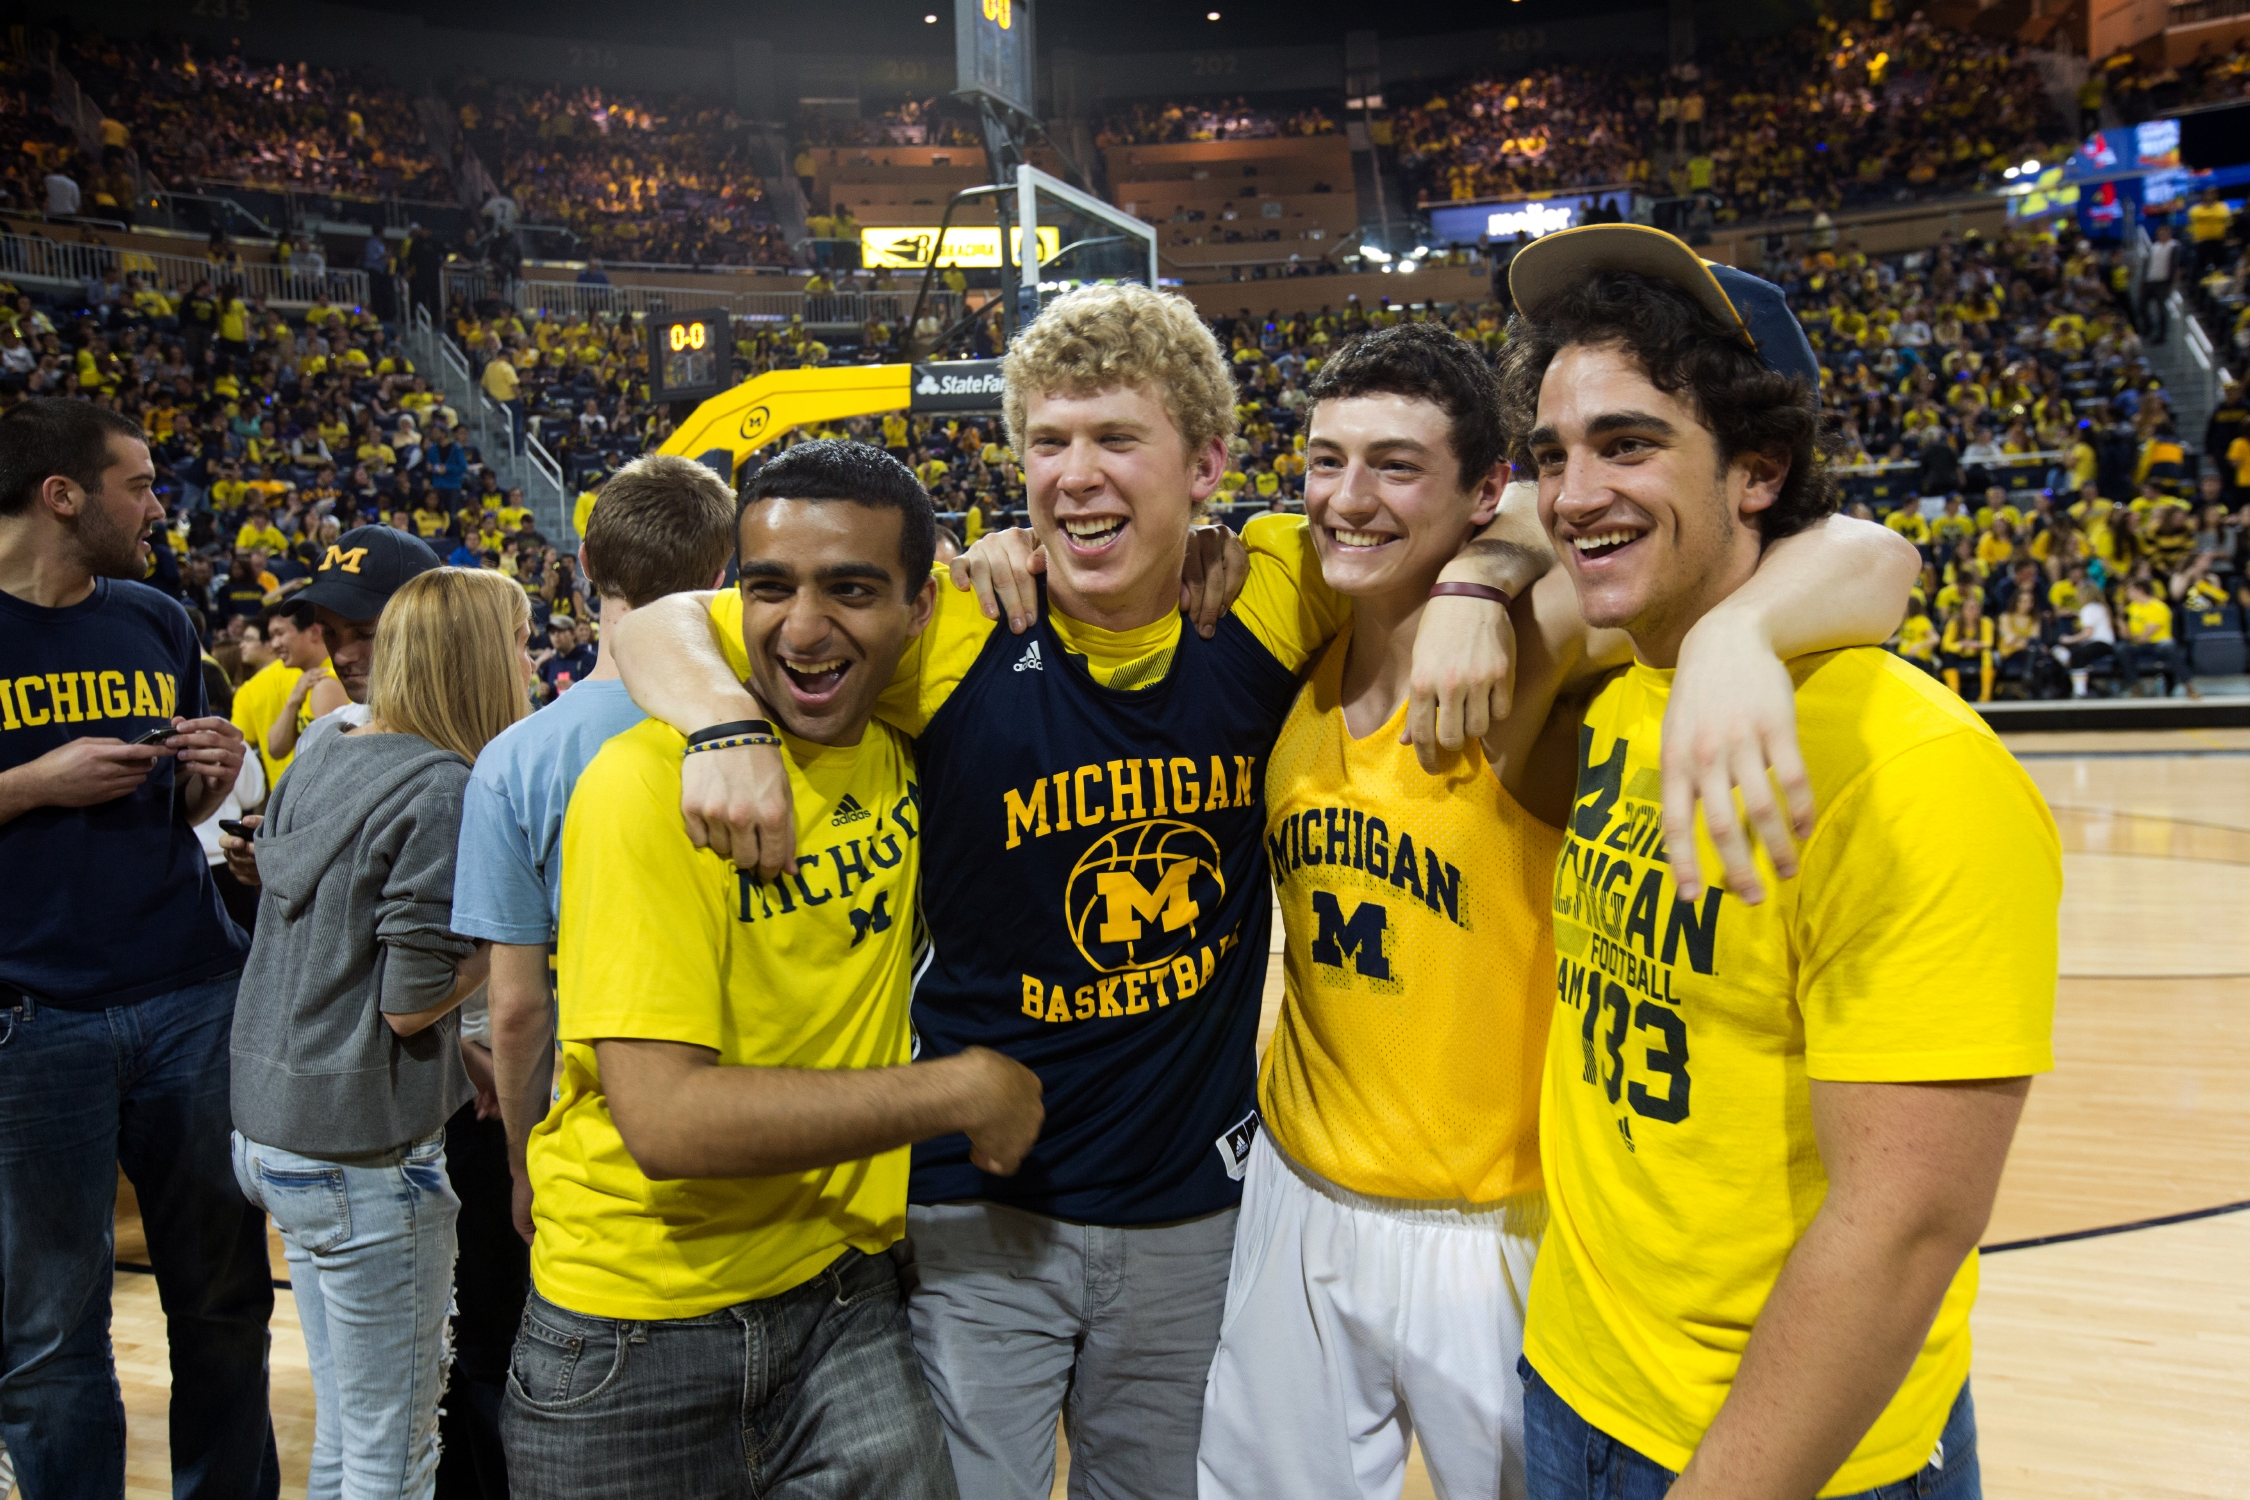 U-M rolls out pilot program to offer mental health support to student-athletes